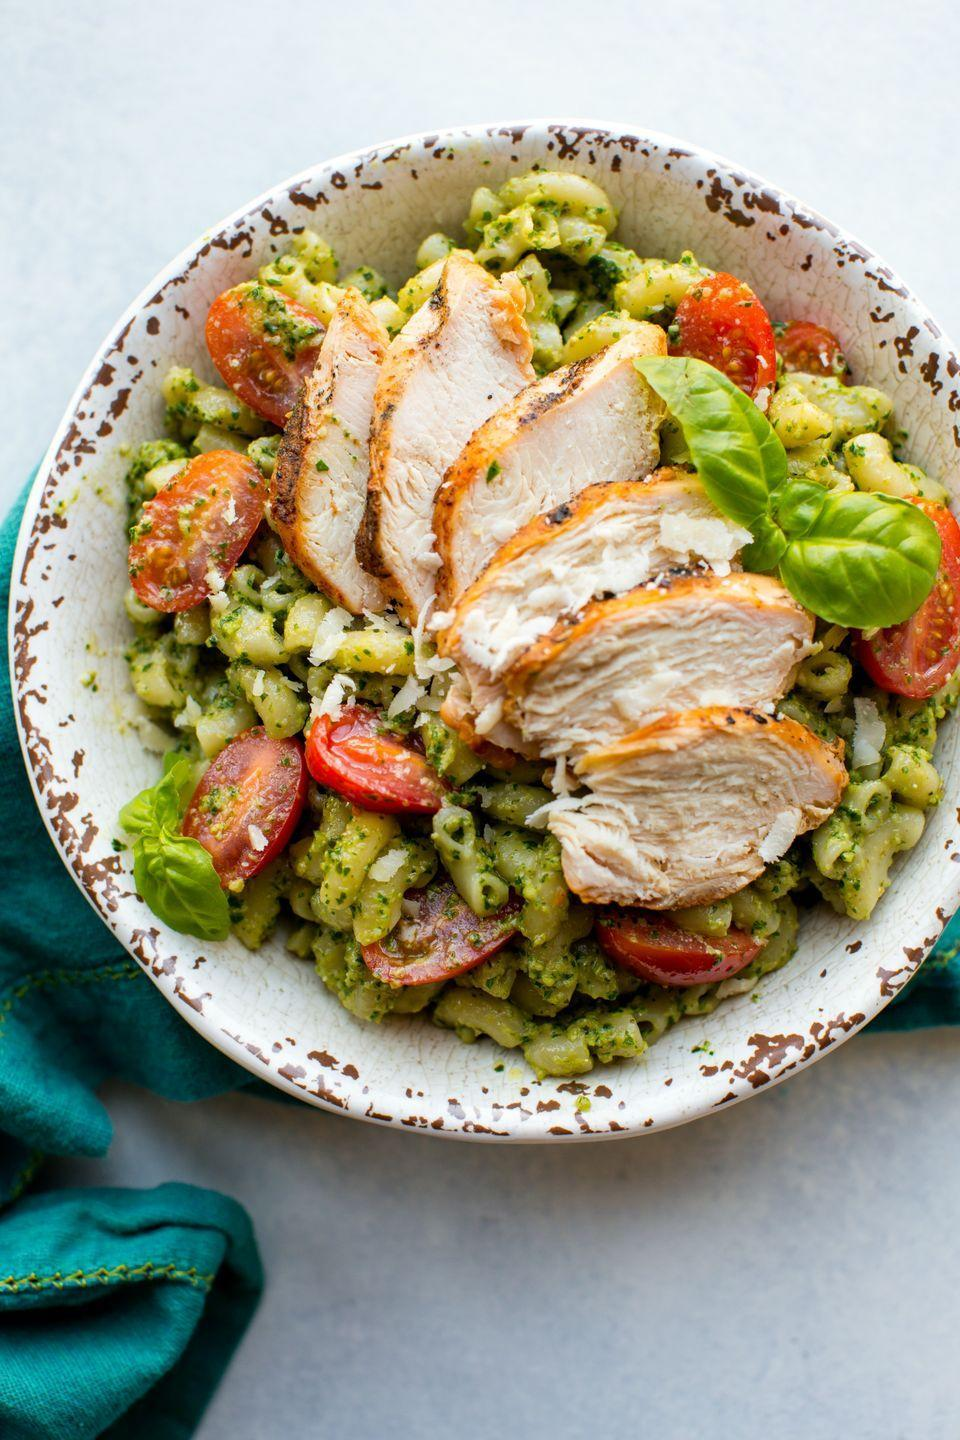 """<p>Ready in under 30 minutes, you'll flip for this simple homemade pesto. Using part kale and basil, it's a next level sauce your pasta deserves.</p><p>Get the recipe from <a href=""""https://www.delish.com/cooking/recipe-ideas/recipes/a52790/kale-pesto-chicken-pasta-recipe/"""" rel=""""nofollow noopener"""" target=""""_blank"""" data-ylk=""""slk:Delish"""" class=""""link rapid-noclick-resp"""">Delish</a>.</p>"""